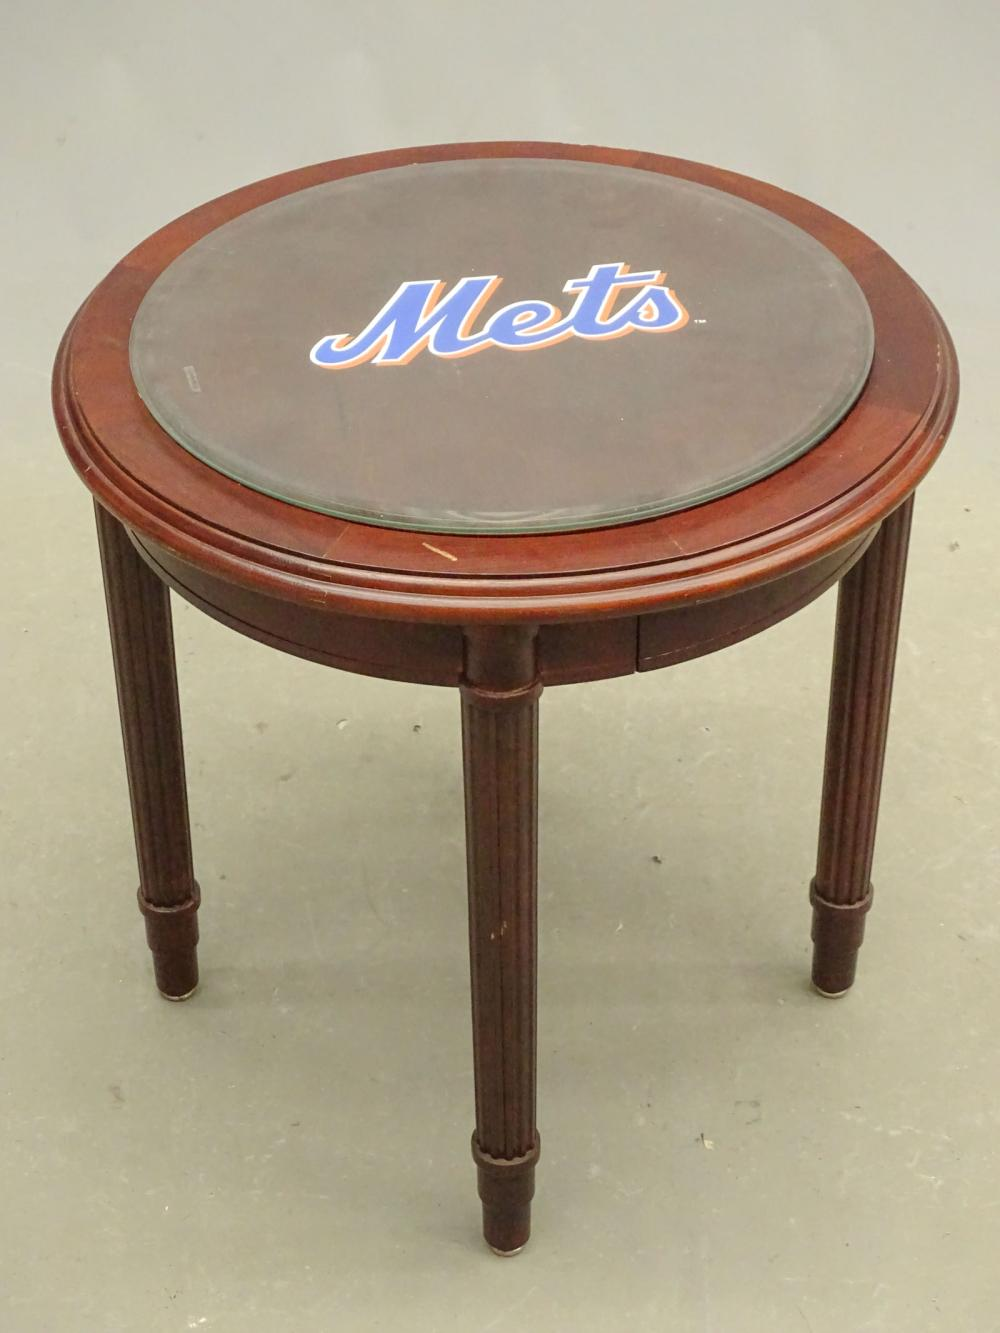 Mets Baseball Table